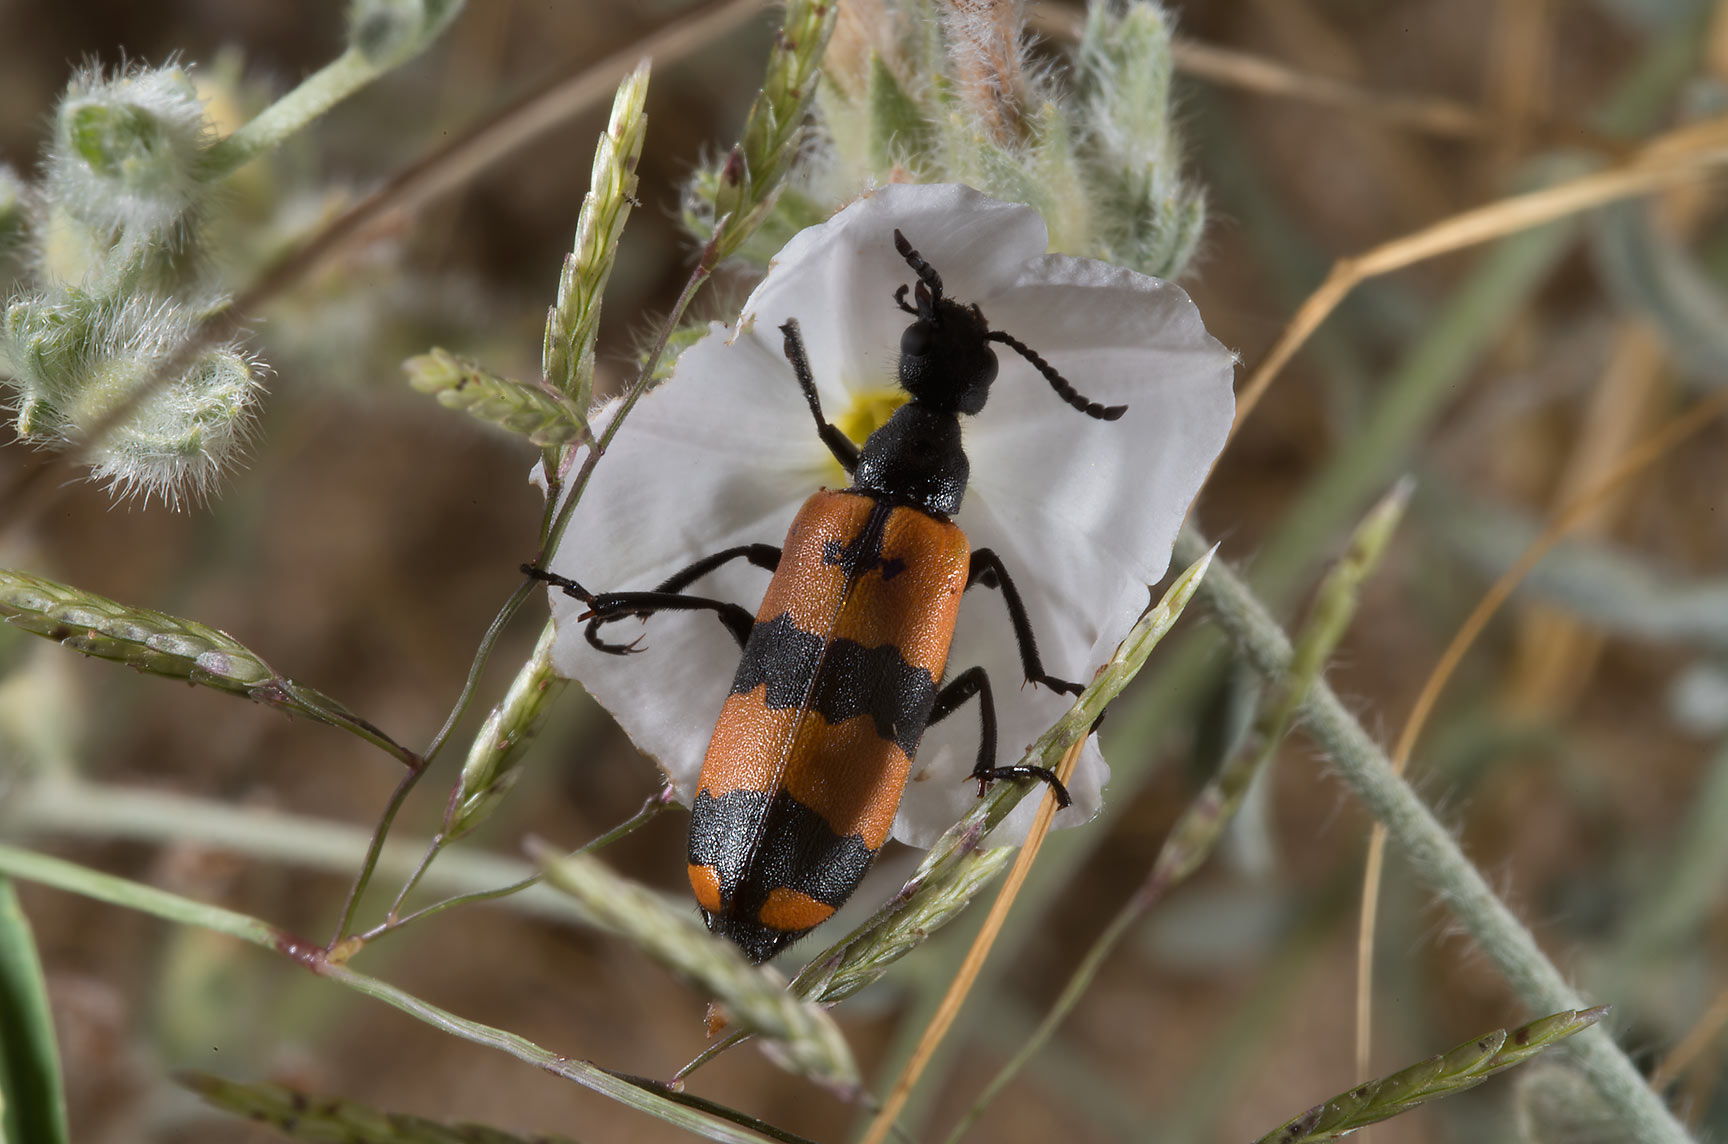 Black and orange CMR (blister, or oil) beetle...from Khawzan to Al-Jumayliyah. Qatar